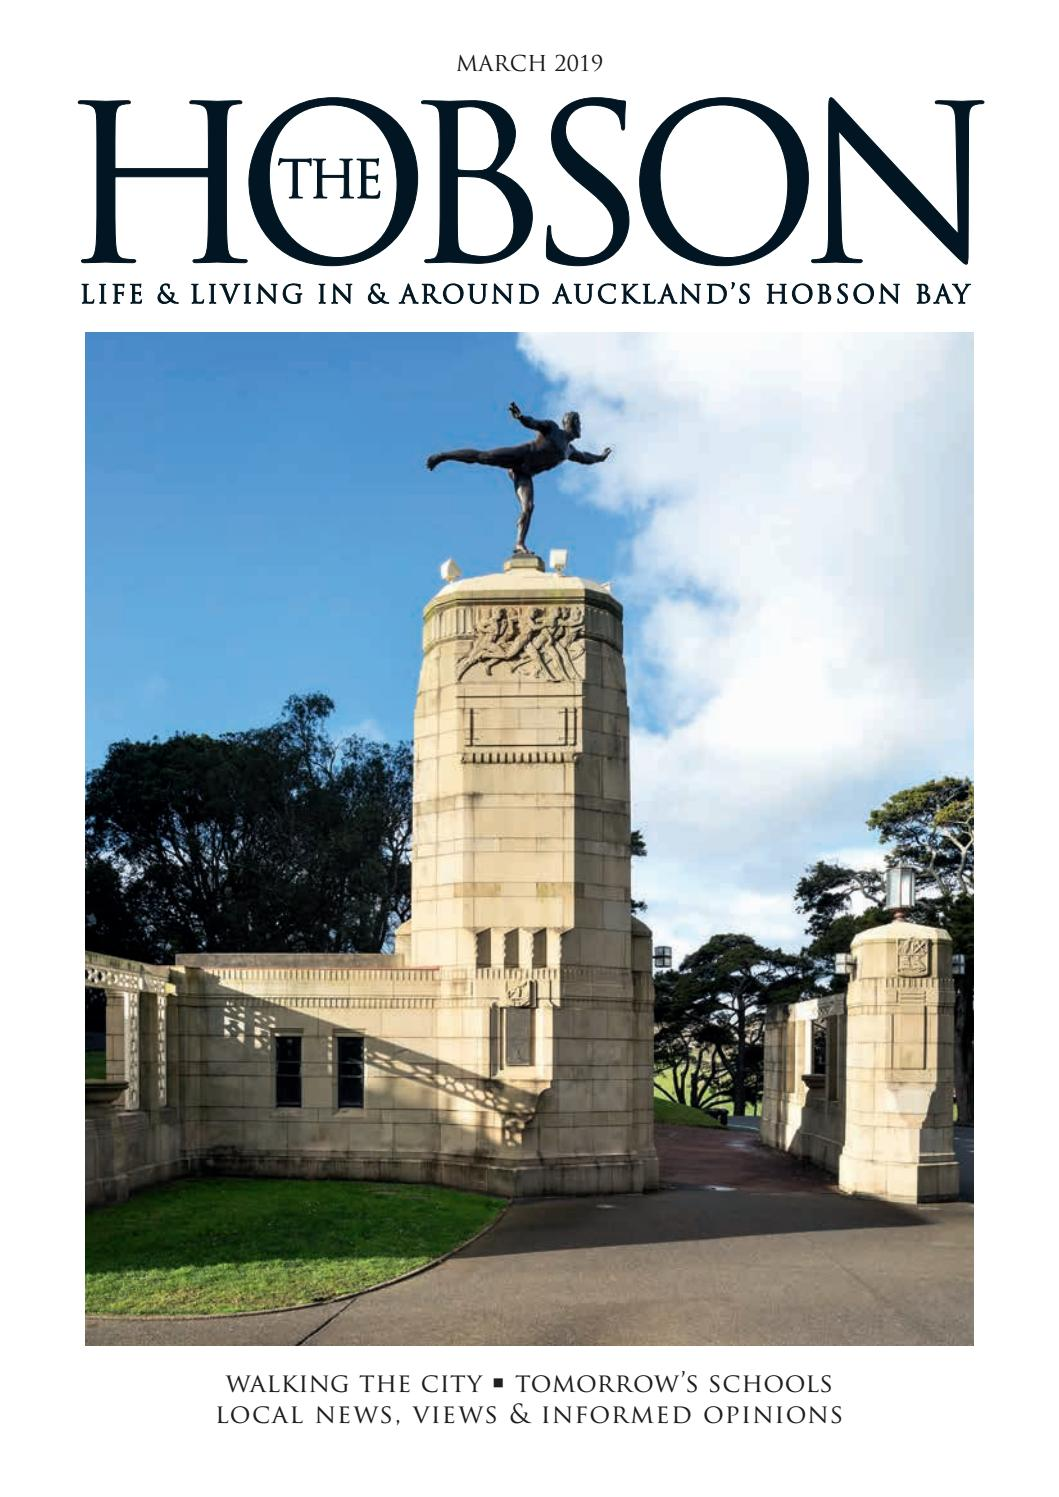 The Hobson Magazine: March 2019 by The Hobson - issuu